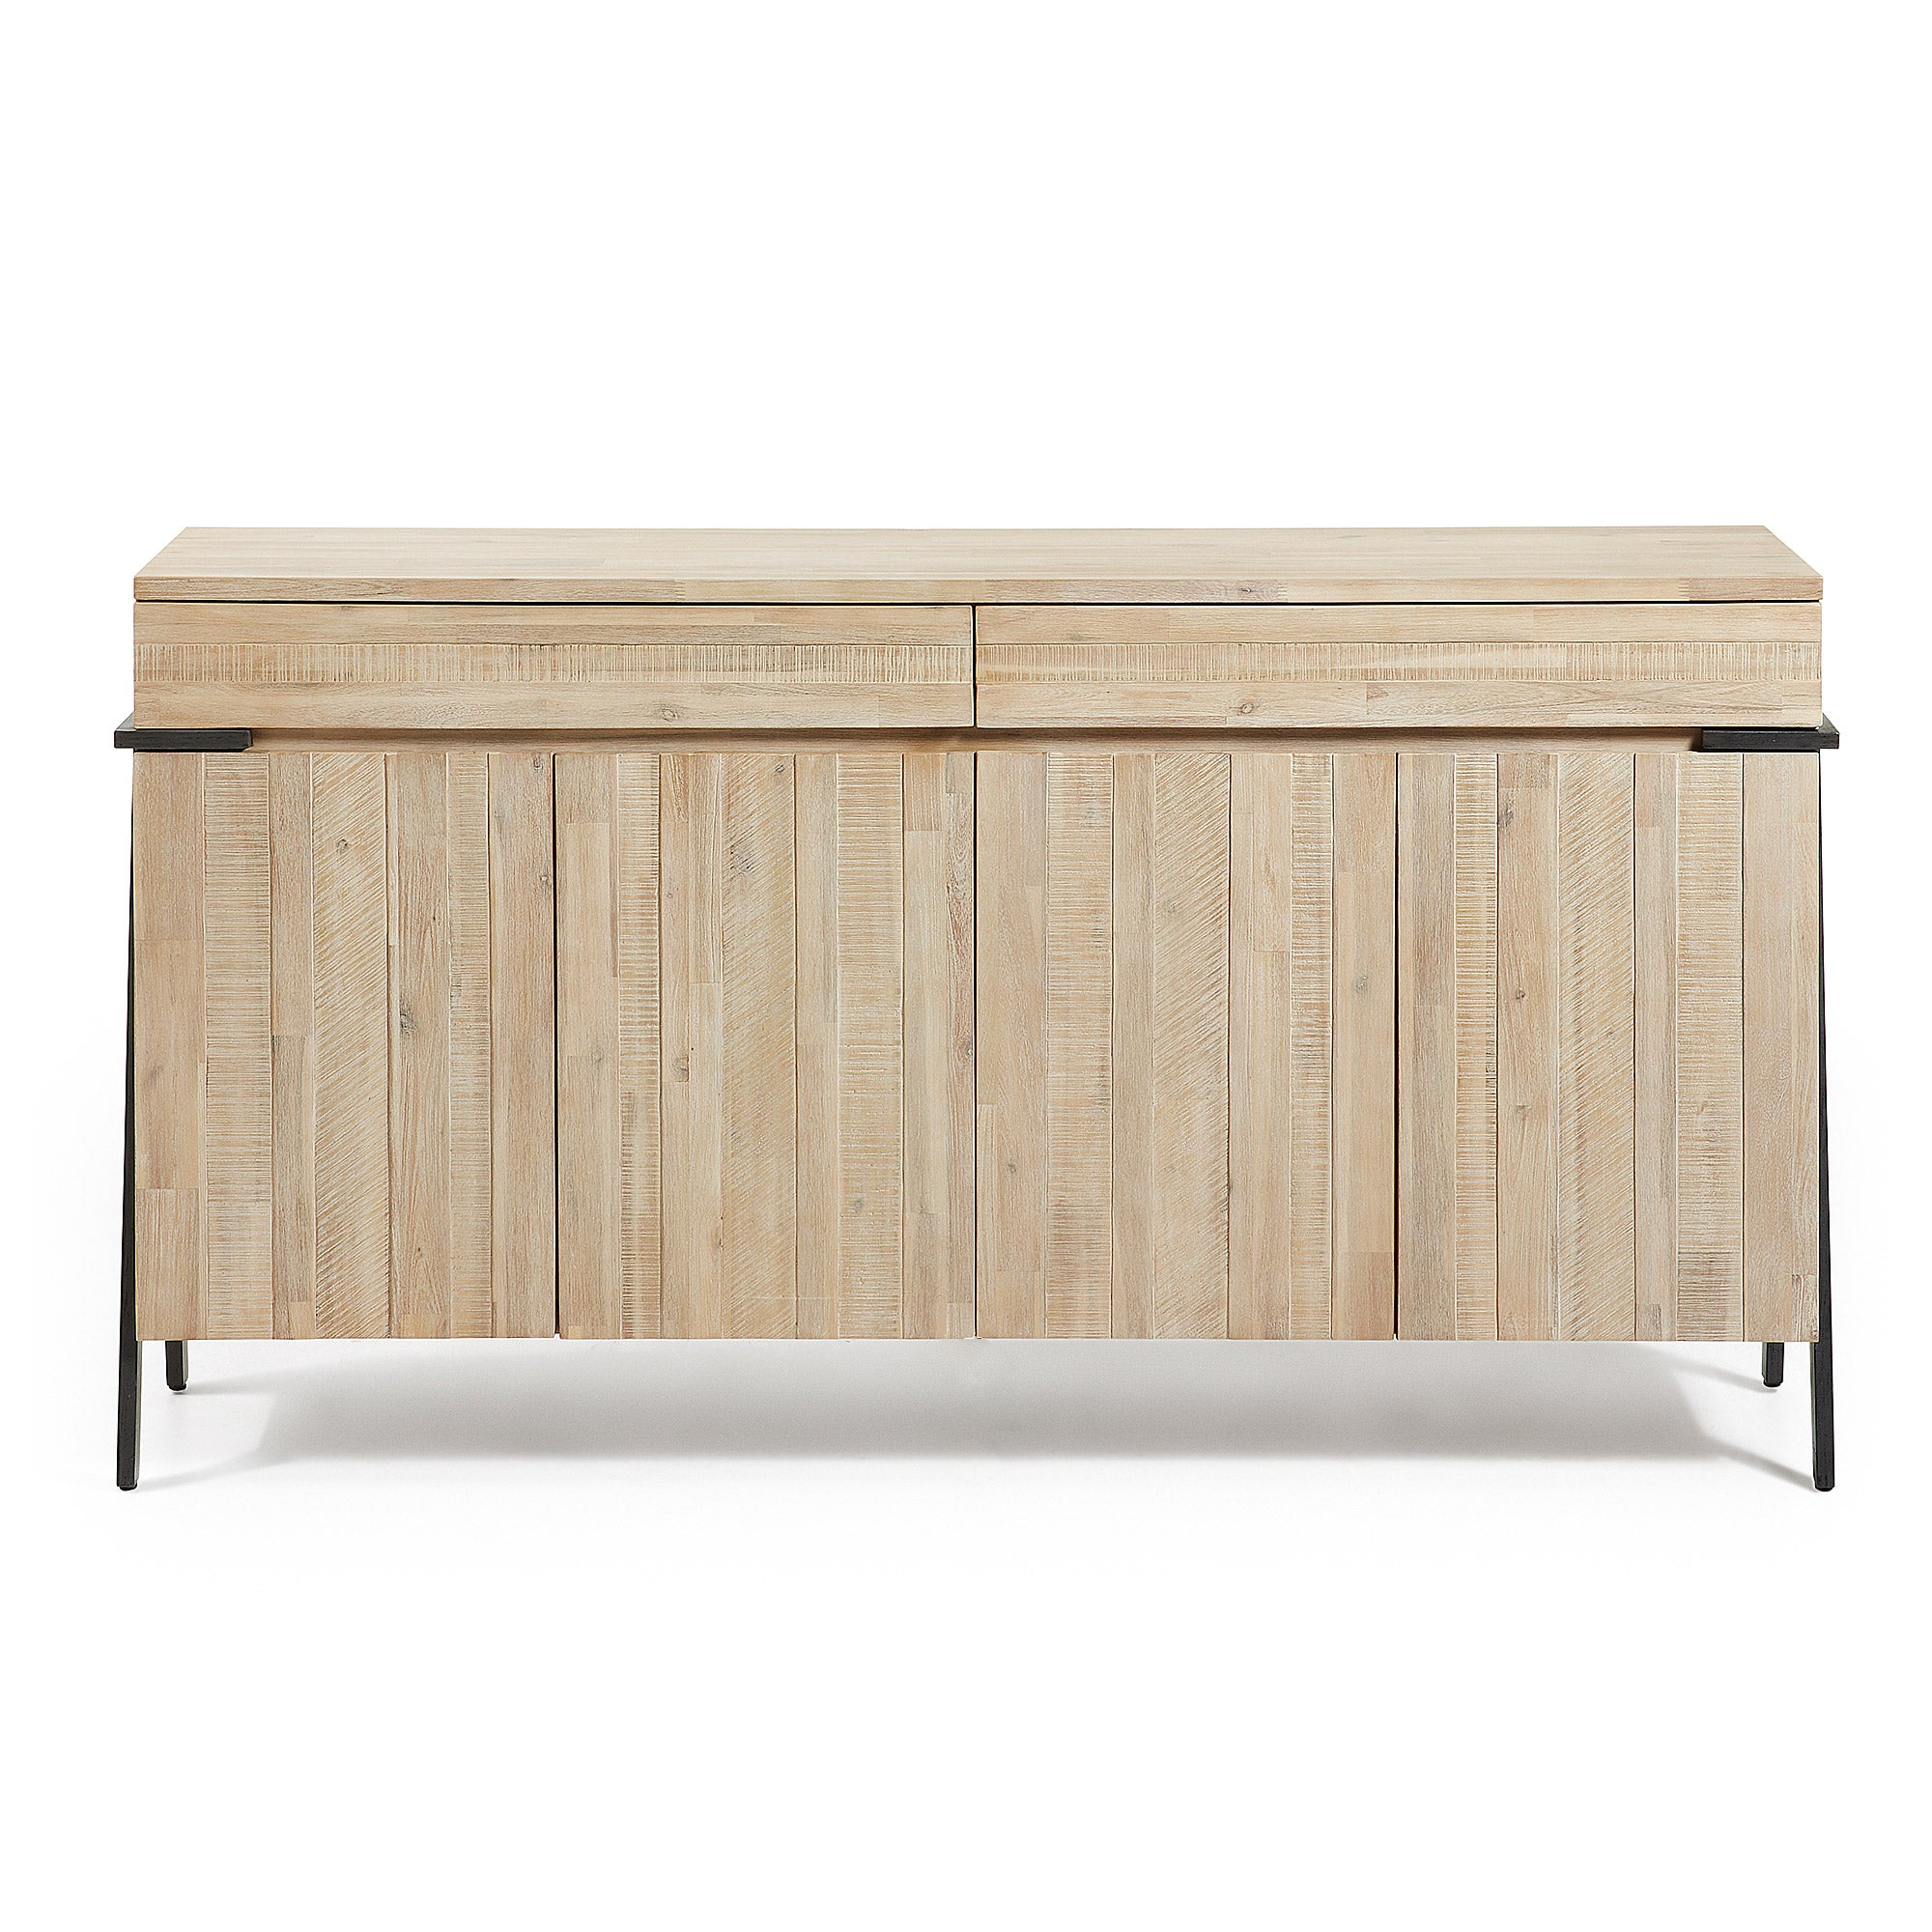 Disset Sideboard 184X45, Buffet - Home-Buy Interiors